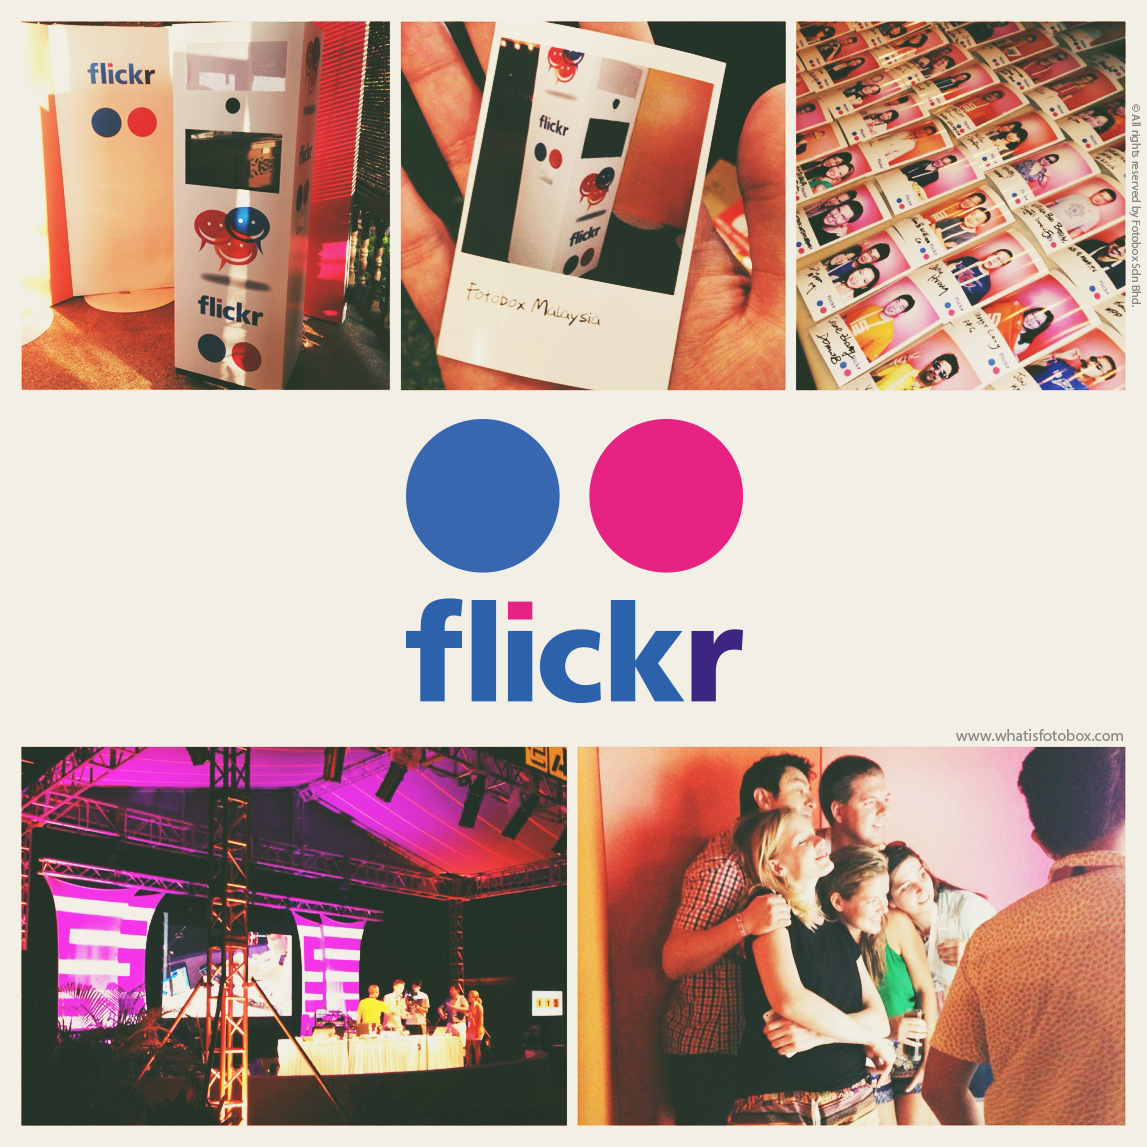 Flickr Fotobox.jpg